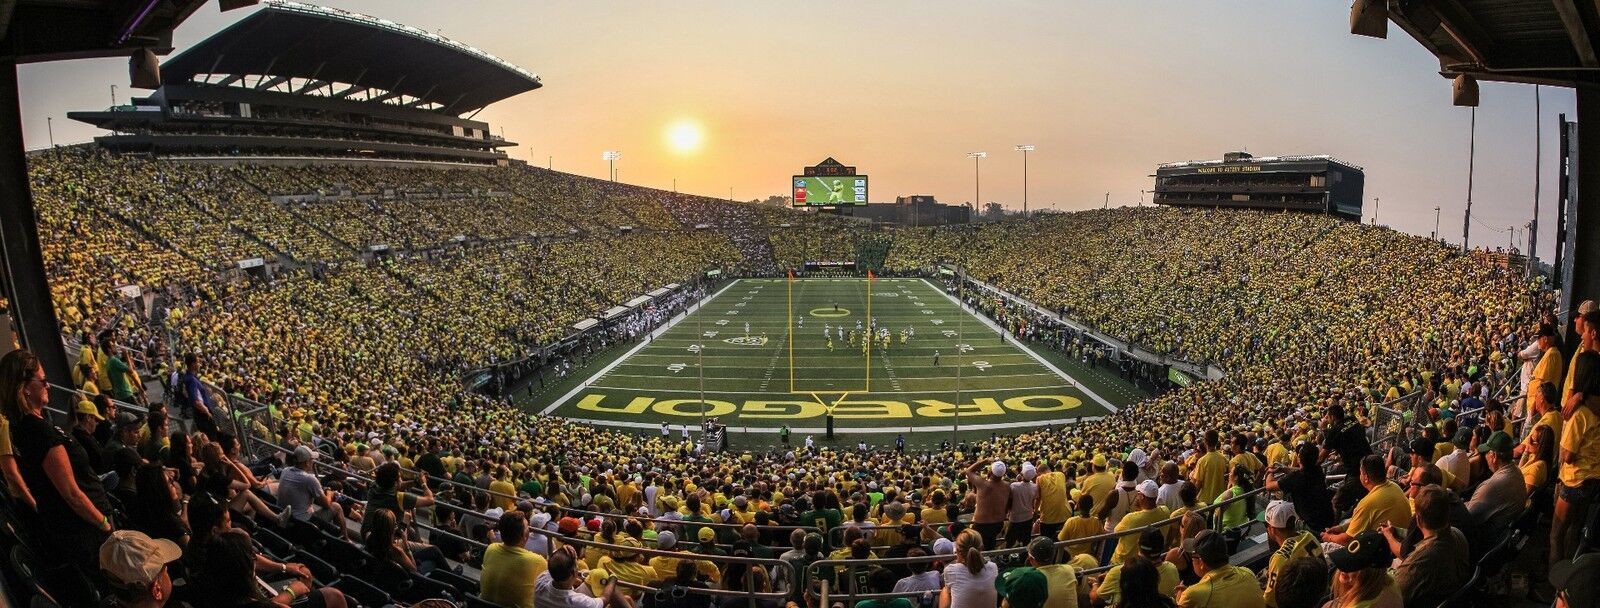 2017 Oregon Ducks Football Season Tickets - Season Package (Includes Tickets for all Home Games)